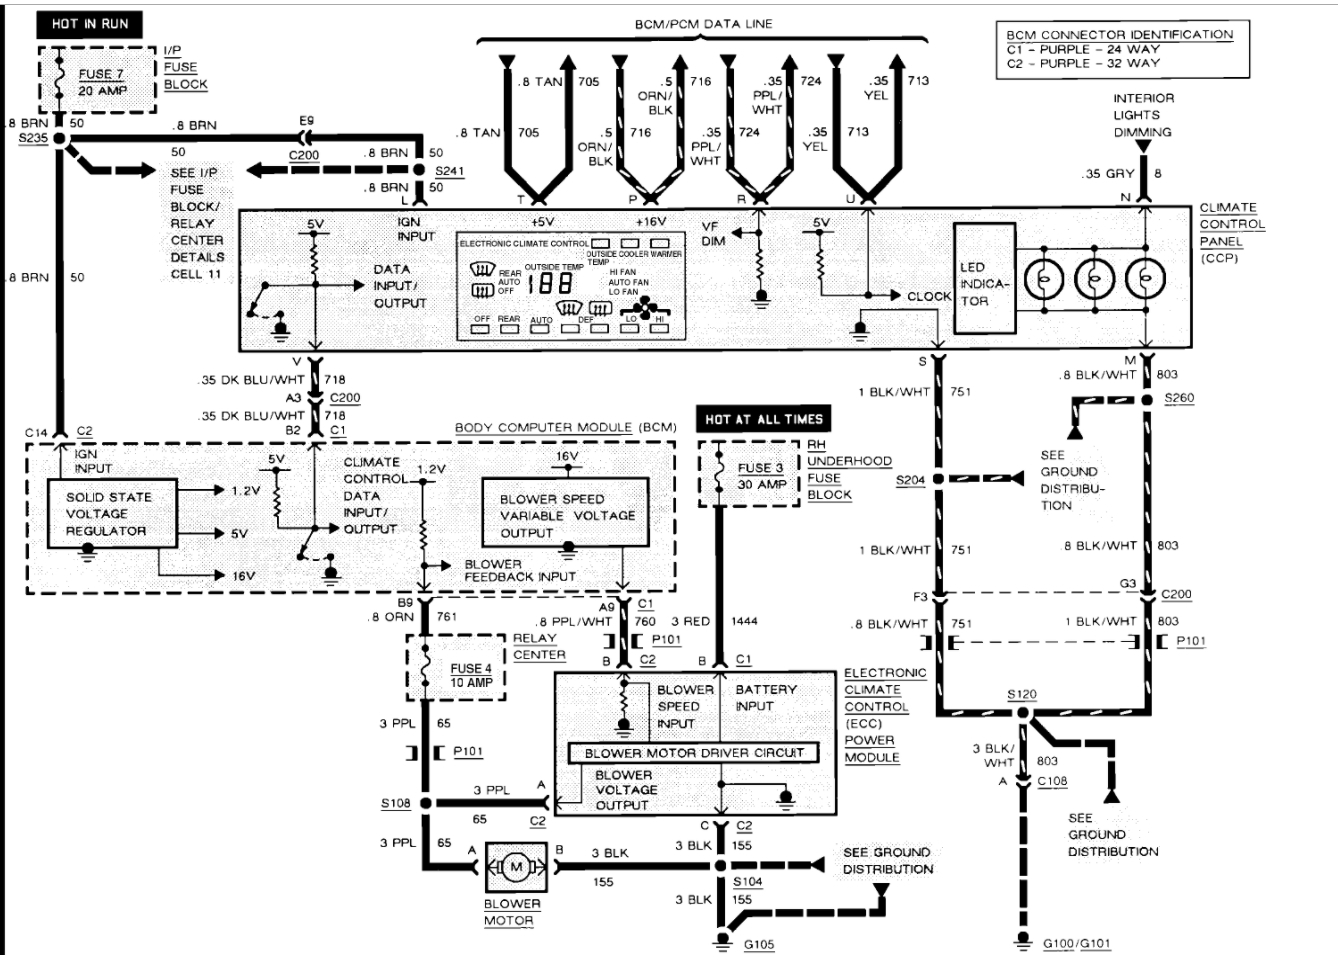 hight resolution of 1968 cadillac ac wiring diagram blog wiring diagram 1995 cadillac ac wiring diagram cadillac ac diagram